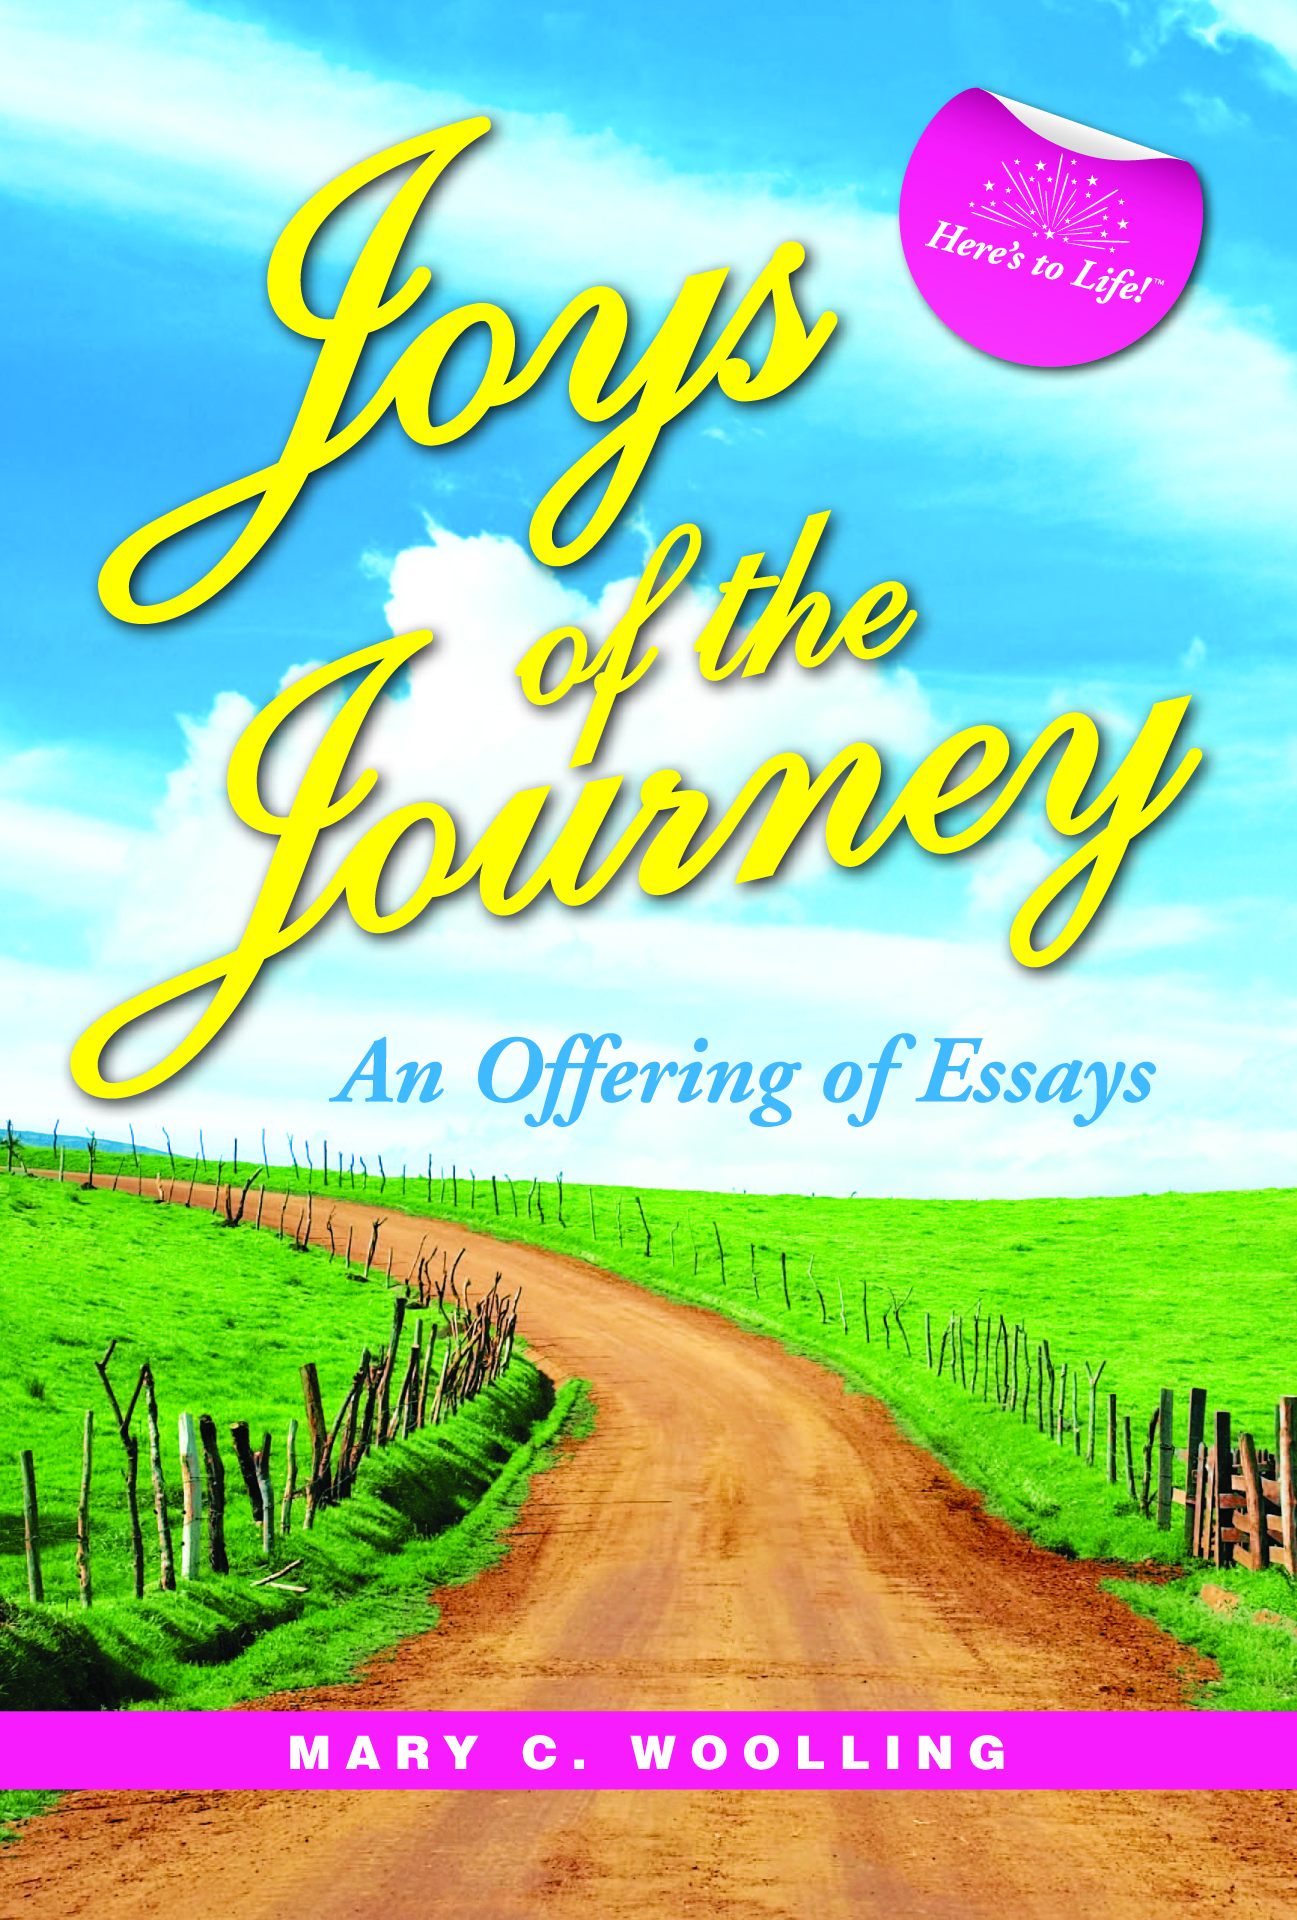 communi qu atilde copy  joys of the journey is a collection of inspirational essays and sentimental stories showcasing the positives of life included are tales of the beauty of